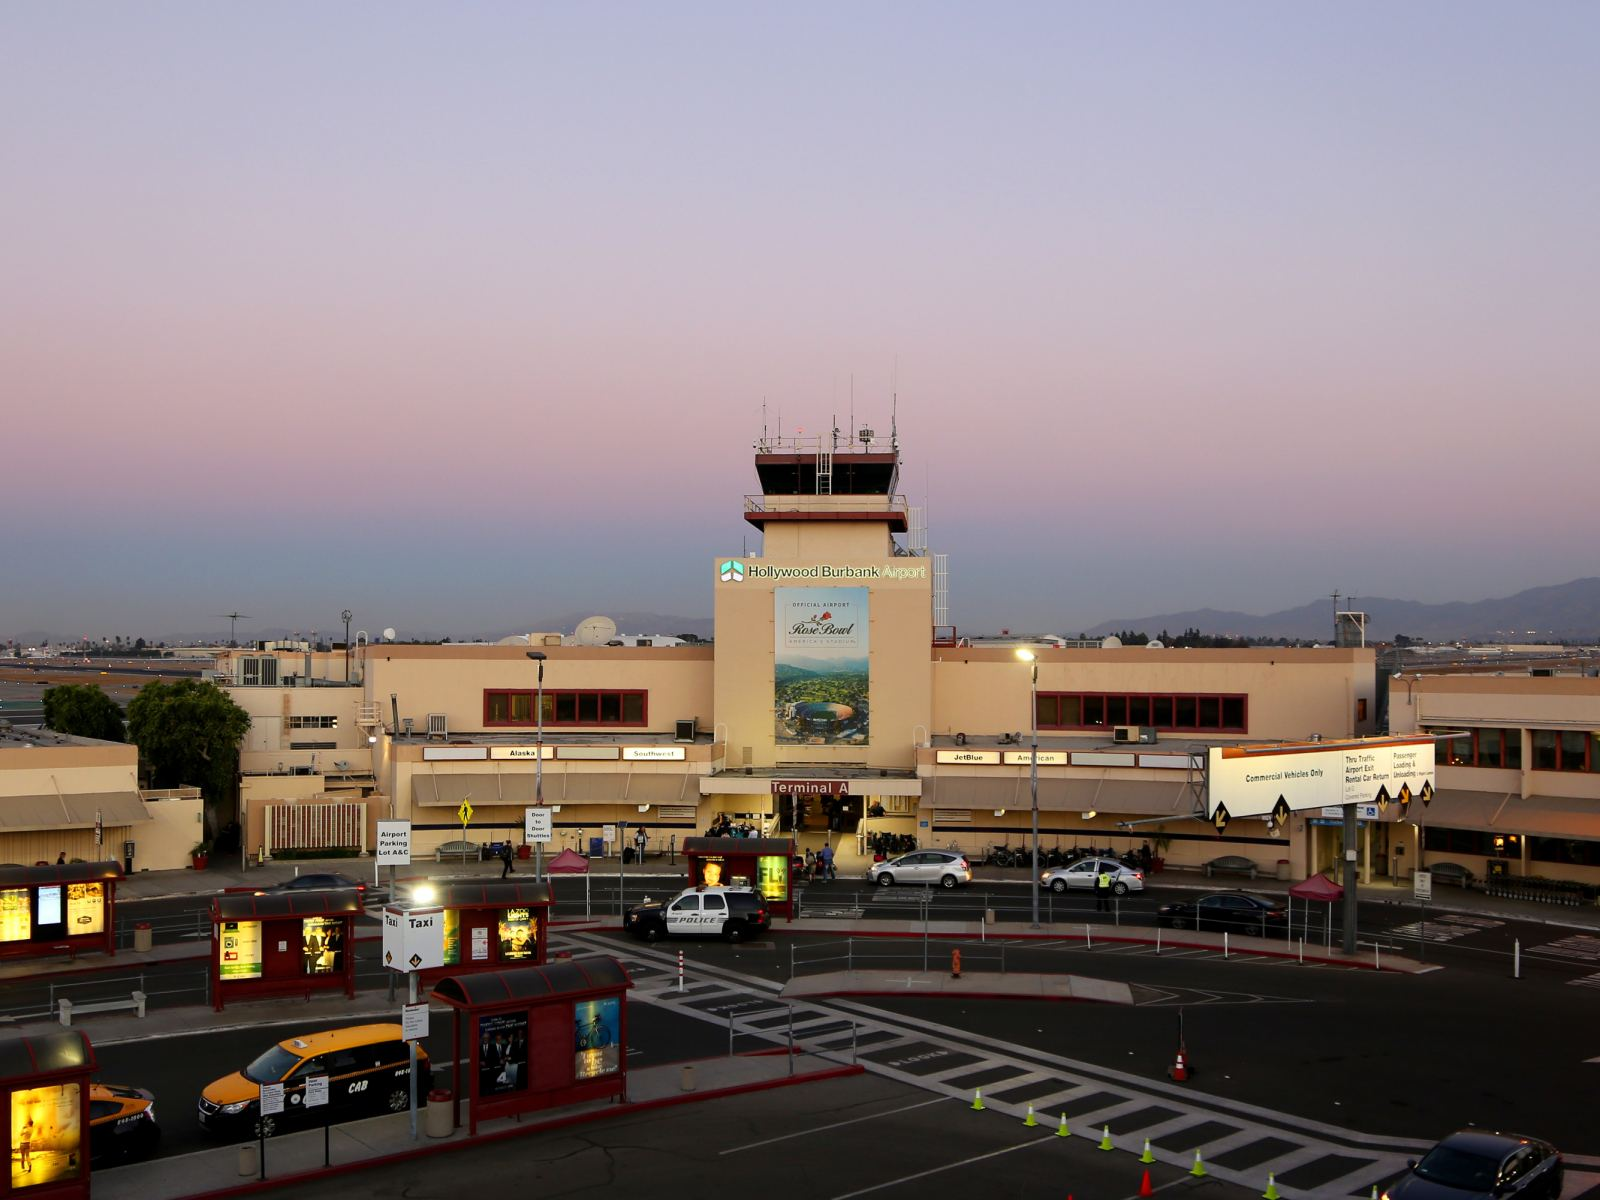 Hollywood Burbank Airport Tower